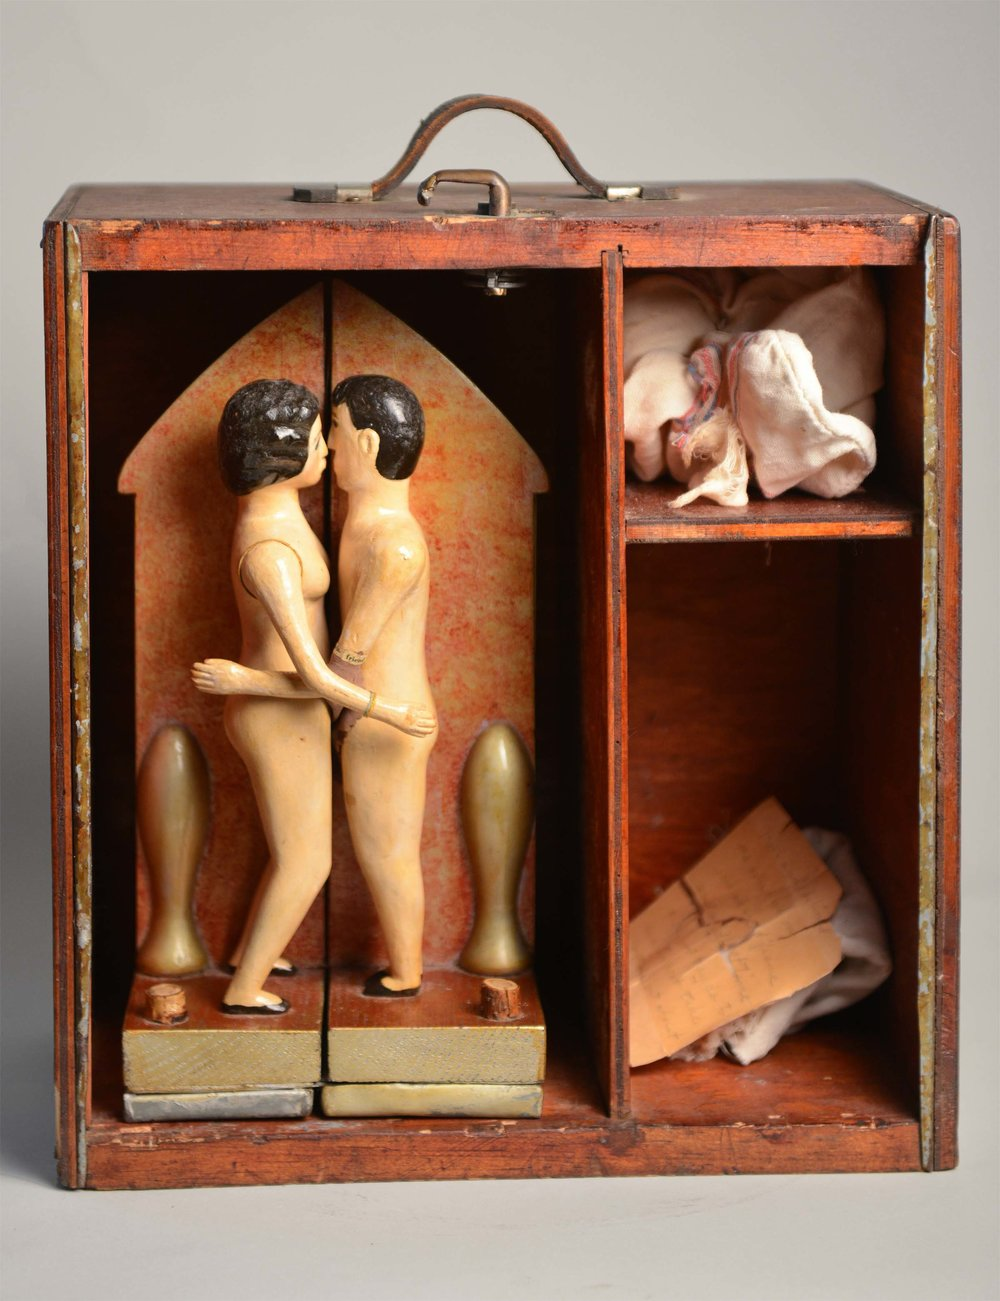 Anonymous, American,  Sex Toy,  c. 1930, carved and painted wood with paper, metal and fabric; original case, 40h x 30w x 4d in.